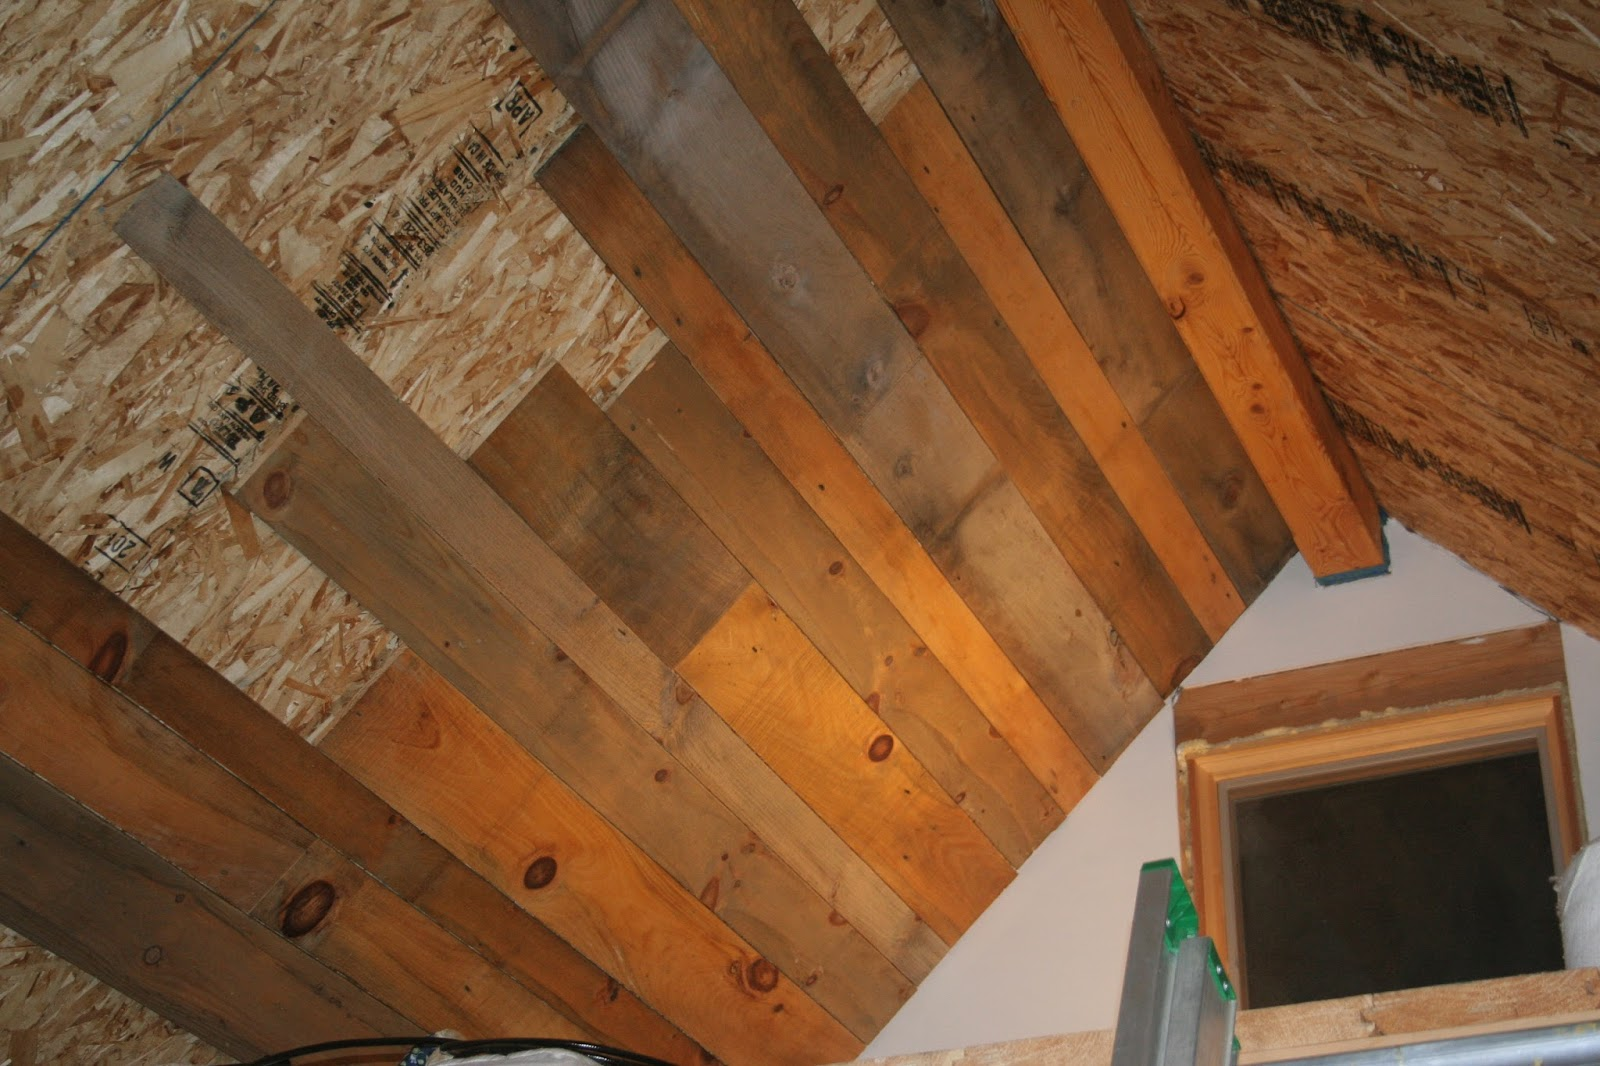 Adam and karen 39 s tiny house in equinunk pa ceiling planks for Faux wood ceiling planks